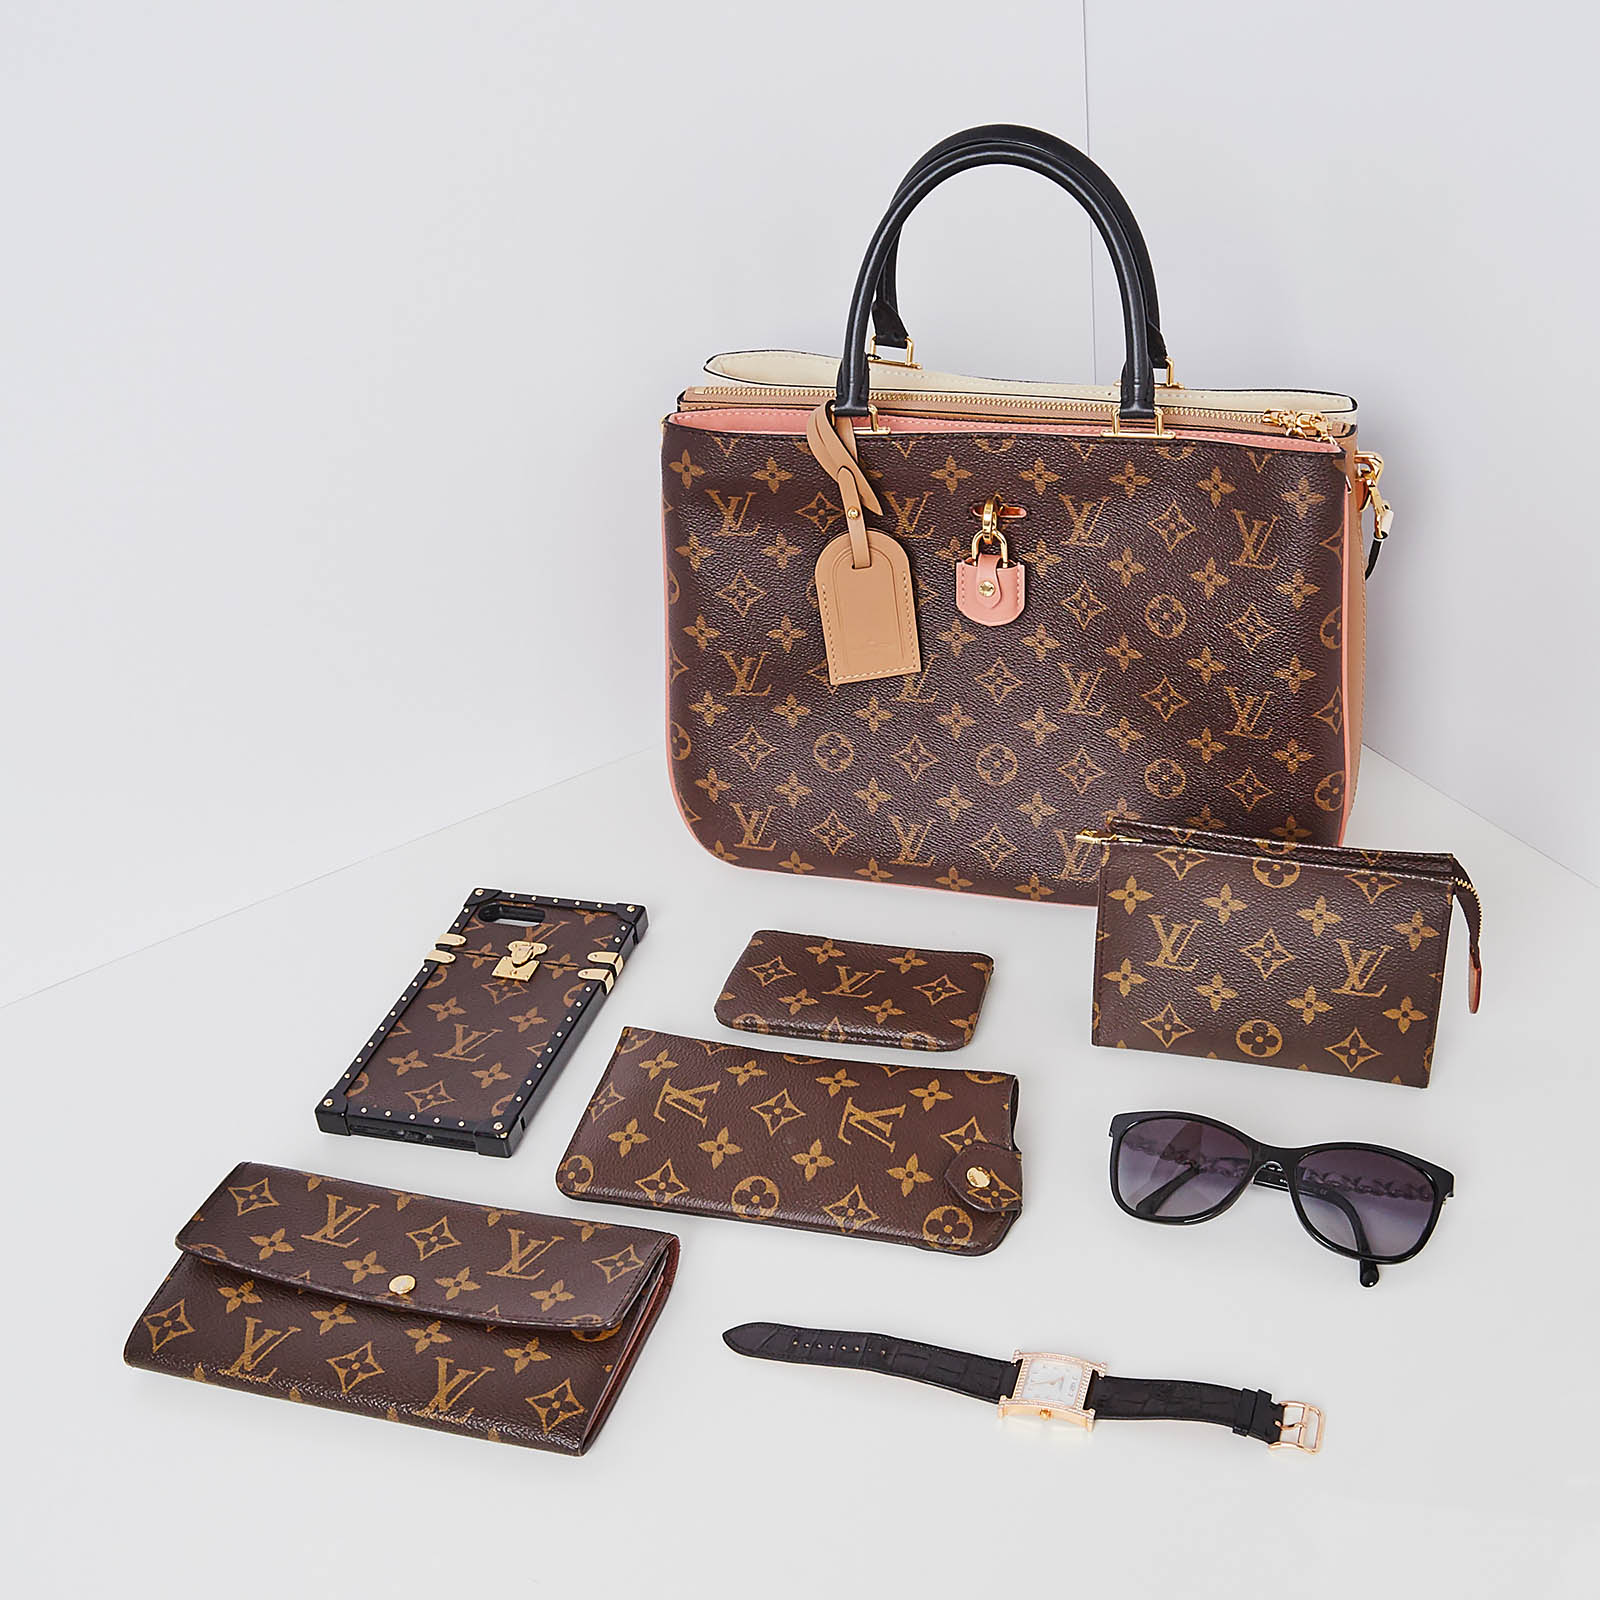 Louis Vuitton Monogram Flatlay